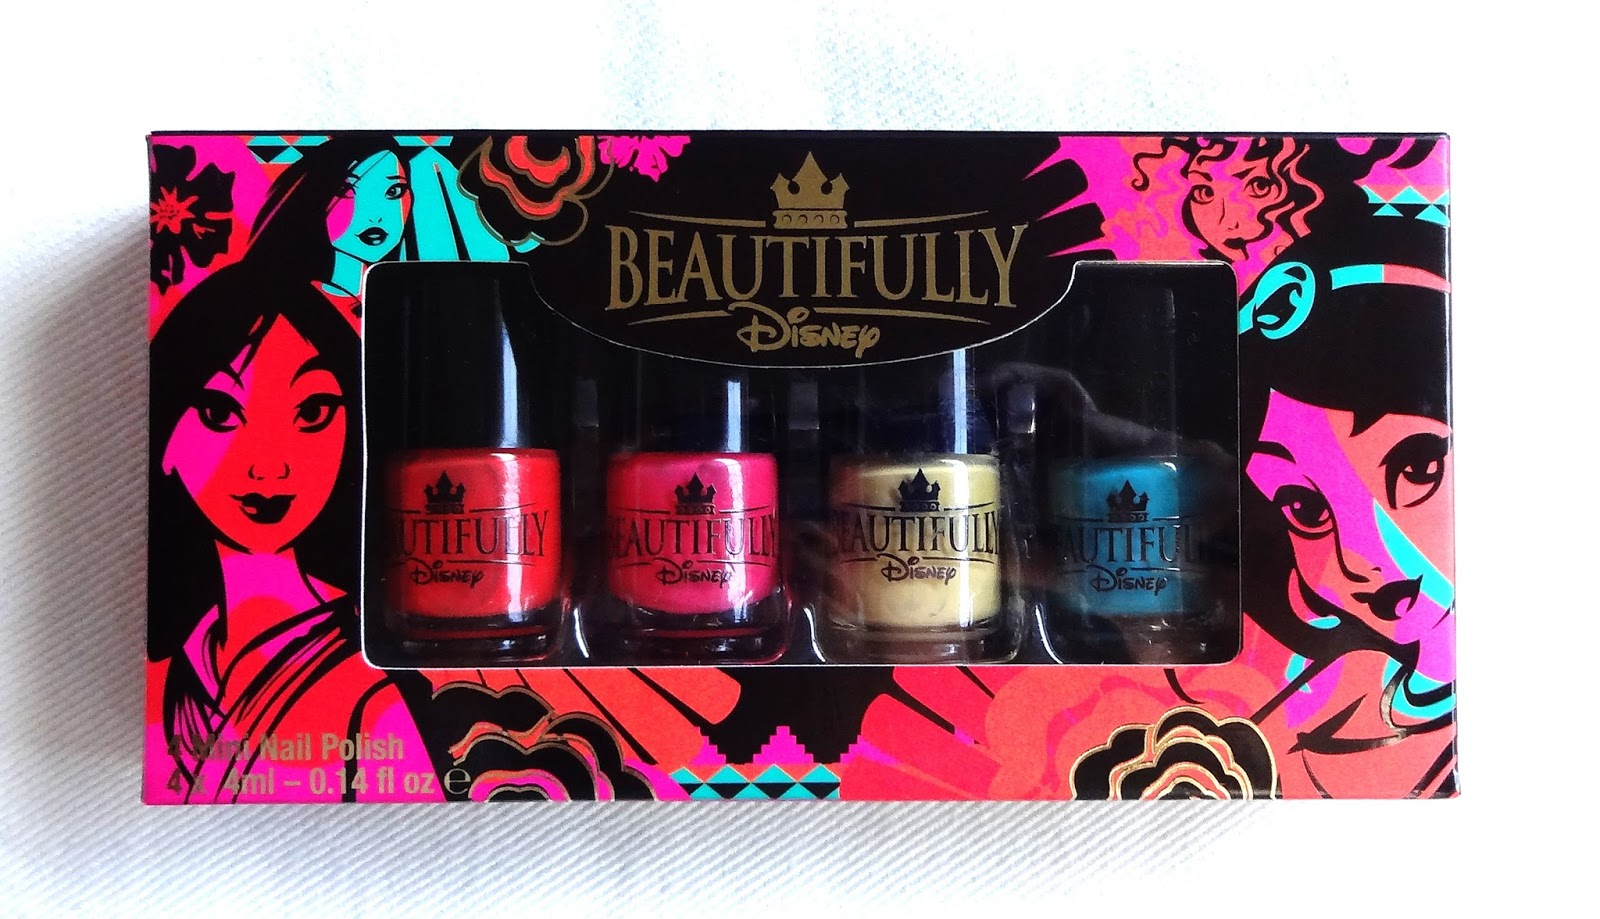 Beautifully Disney Fiery Spirit Nail Polish Set